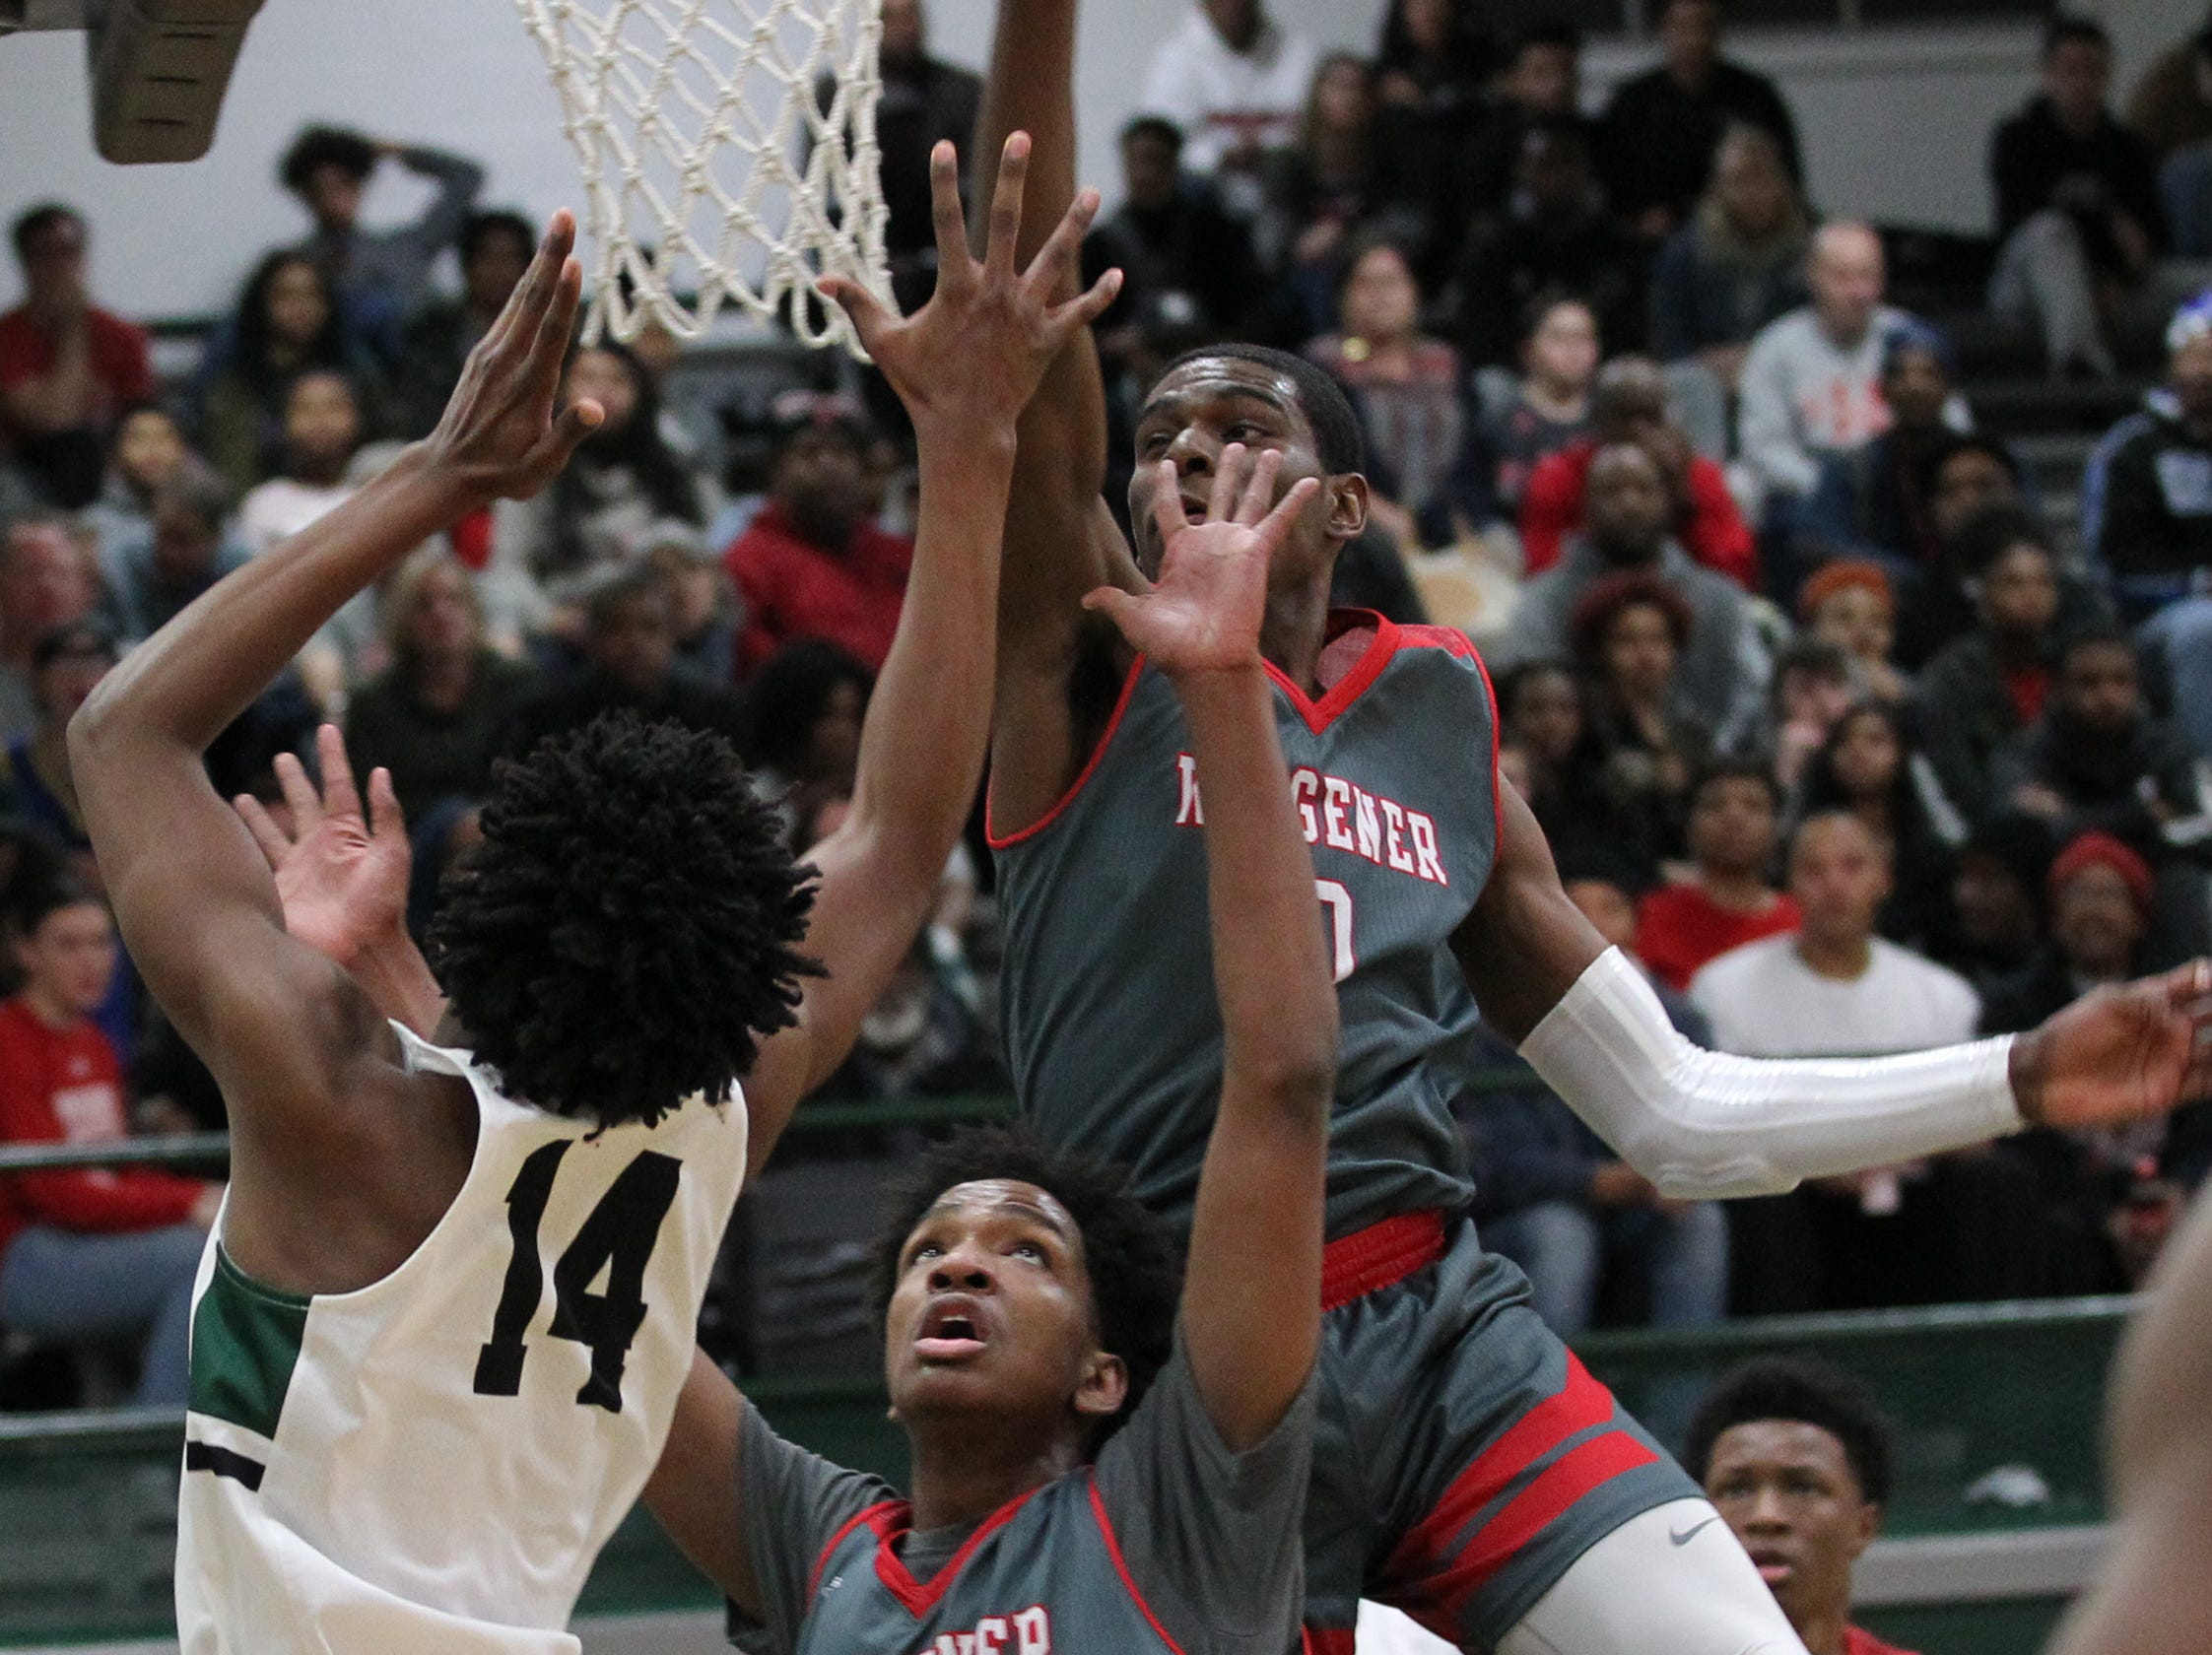 Trinity High School's Kamari Kenemore (14) fights to get his shot off under pressure from Waggener High School's Cobie Montgomey (0) and Nicholas Brewer (14) during the first half of play at Trinity High School in Louisville, Kentucky, Jan. 11,  2019.